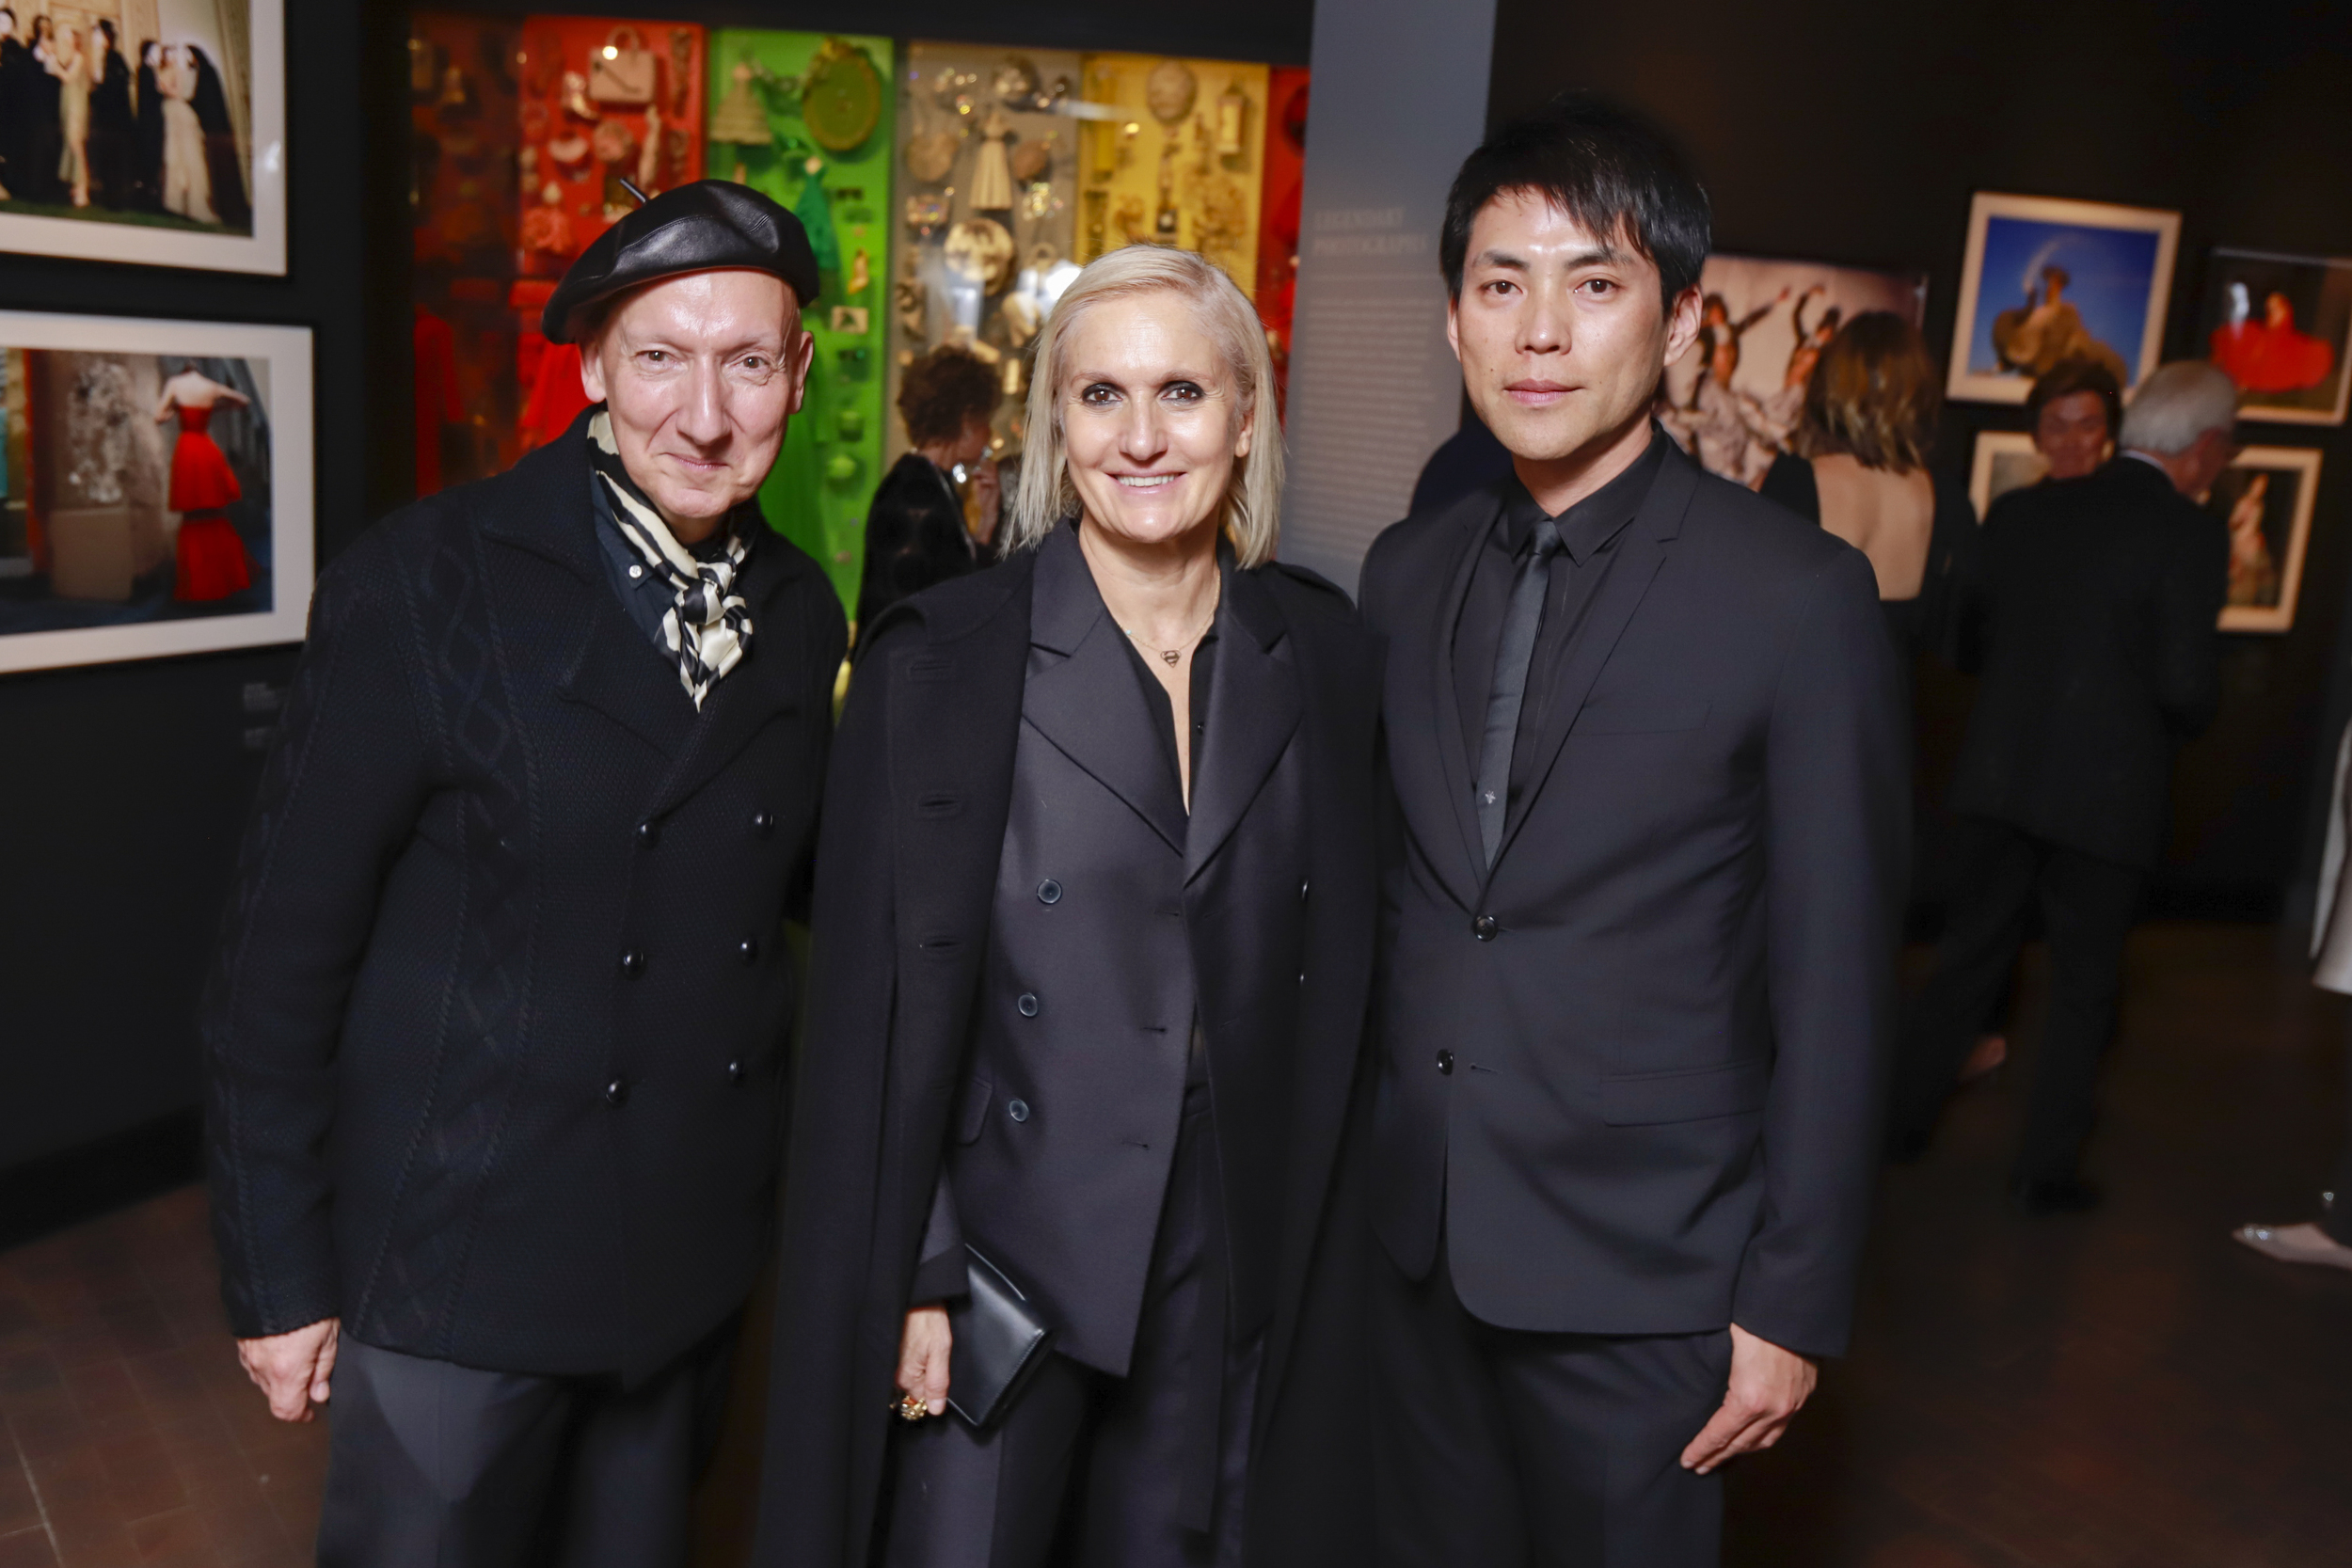 """The Denver Art Museum Chairman's Dinner, featuring the opening of the """"Dior: From Paris to the World"""" exhibition, at the Denver Art Museum, Hamilton Building, in Denver, Colorado, on Friday, Nov. 16, 2018.Photo StevePeterson.photo"""